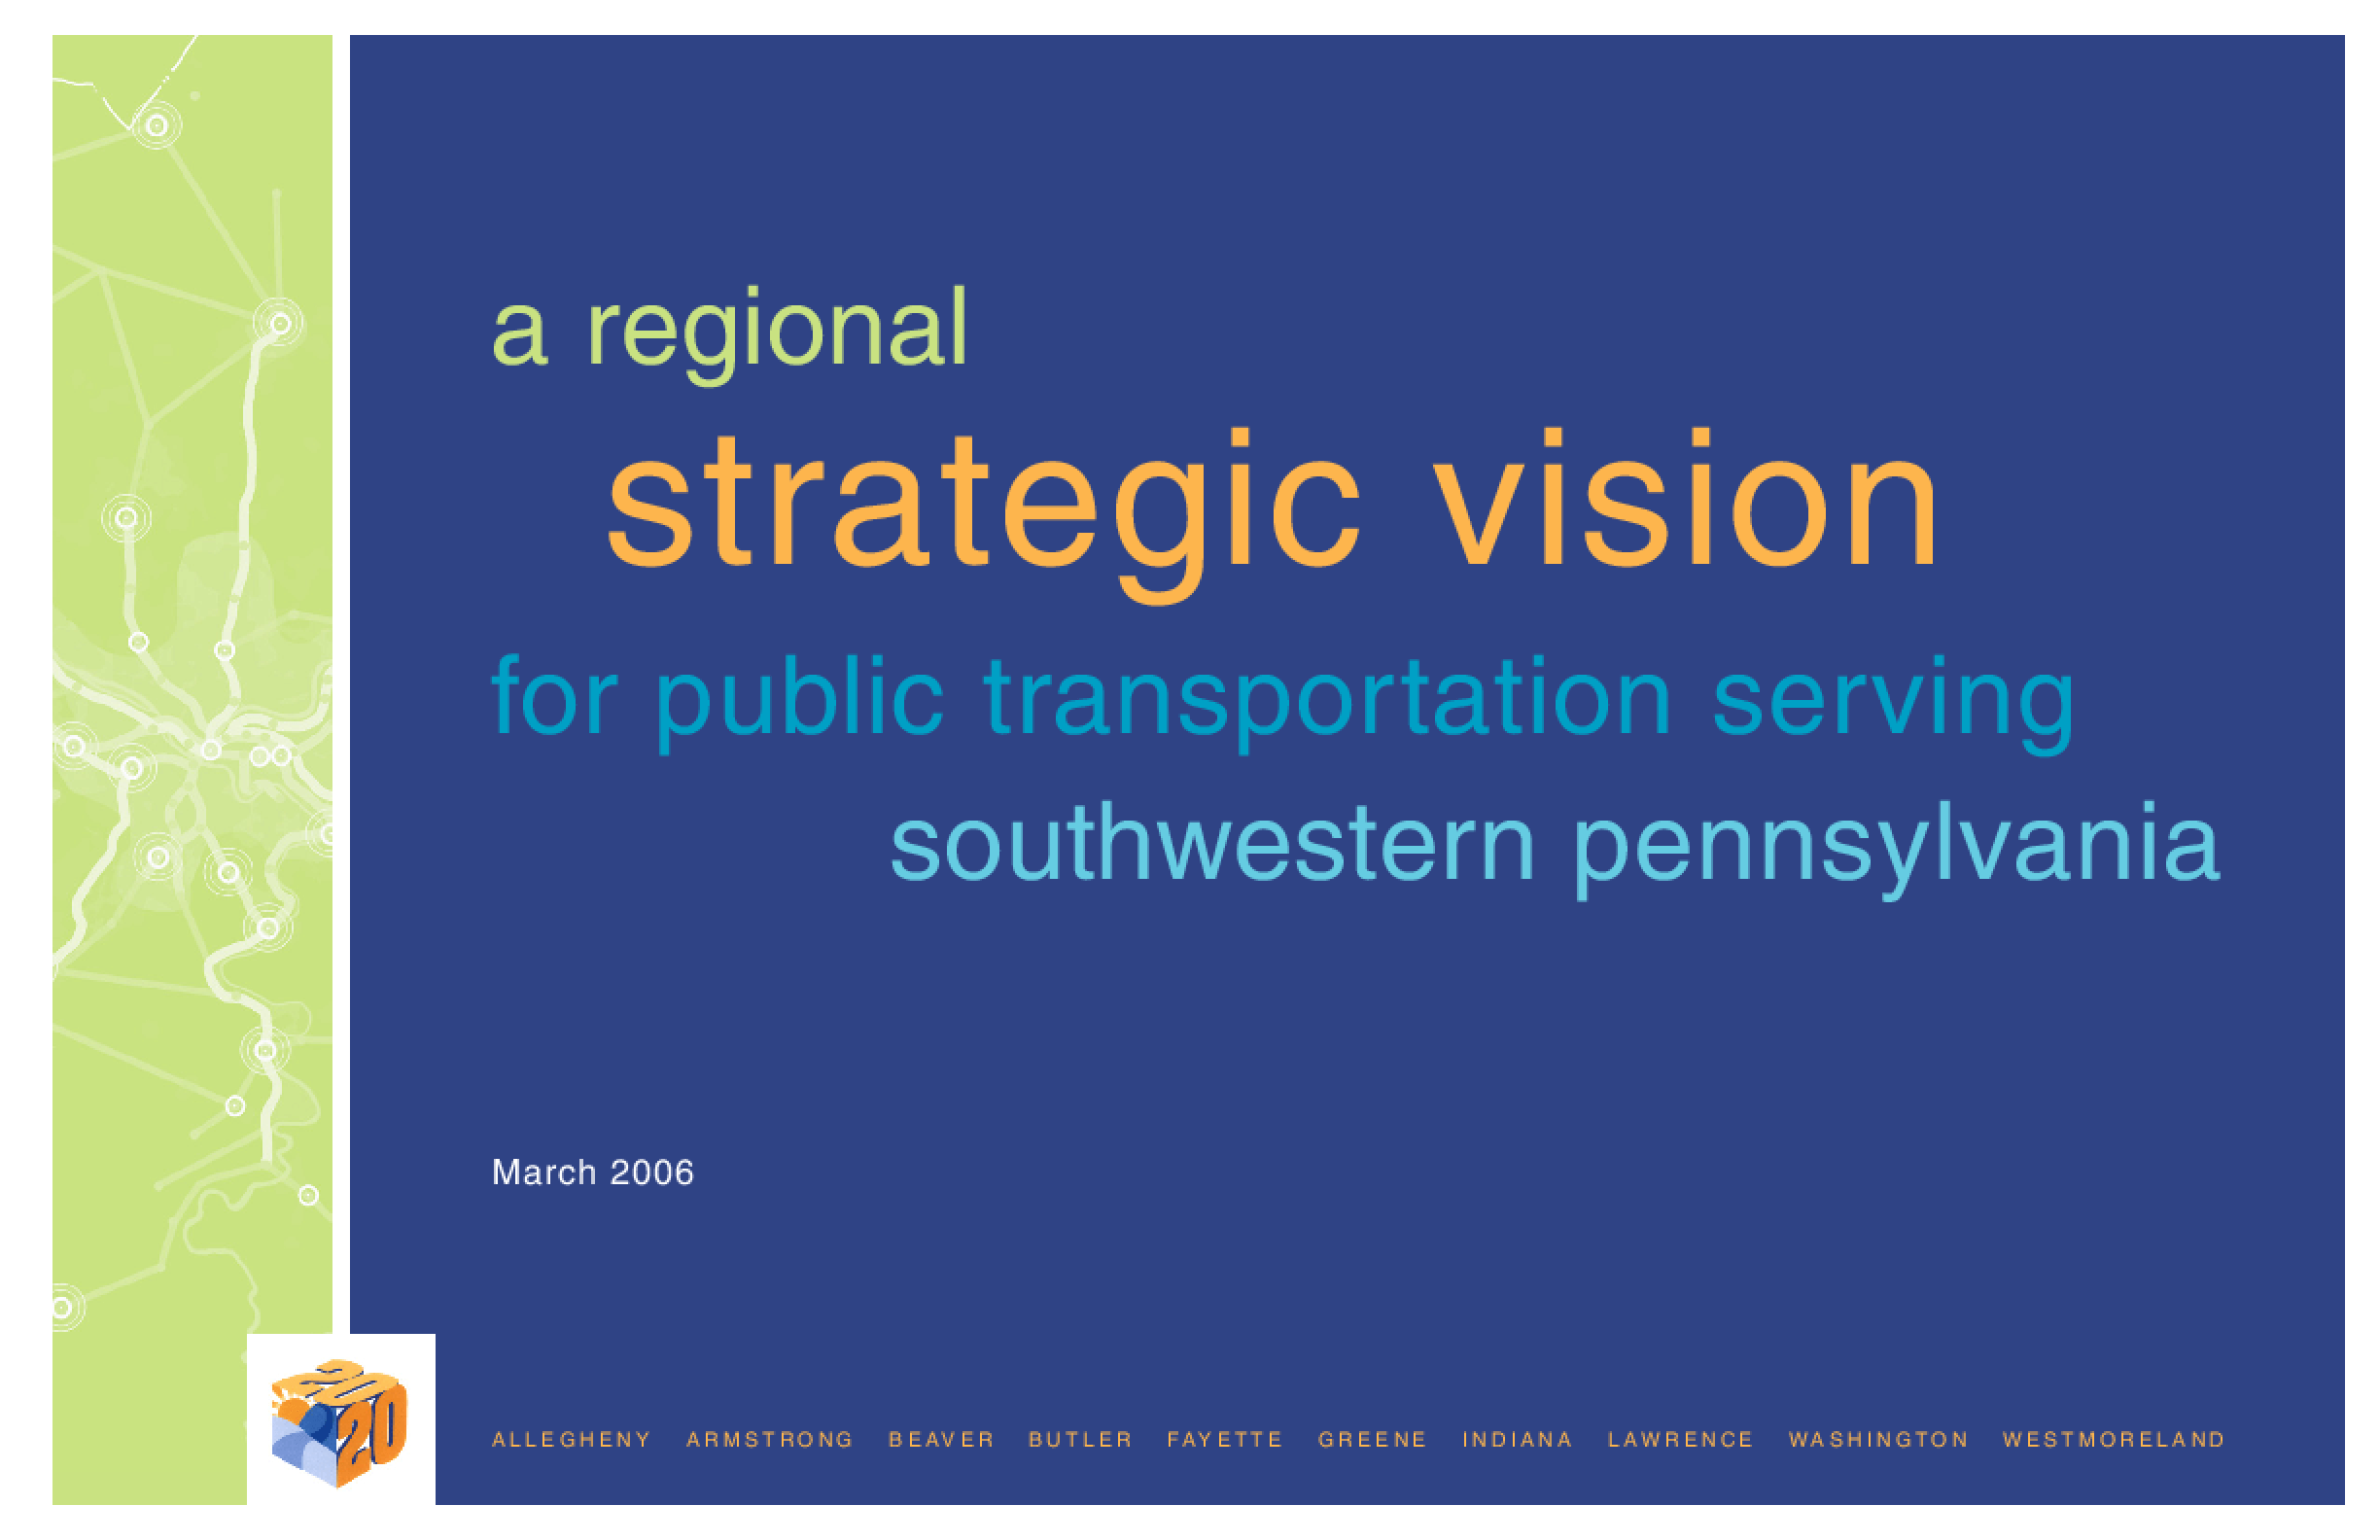 A Regional Strategic Vision for Public Transportation Serving Southwestern Pennsylvania